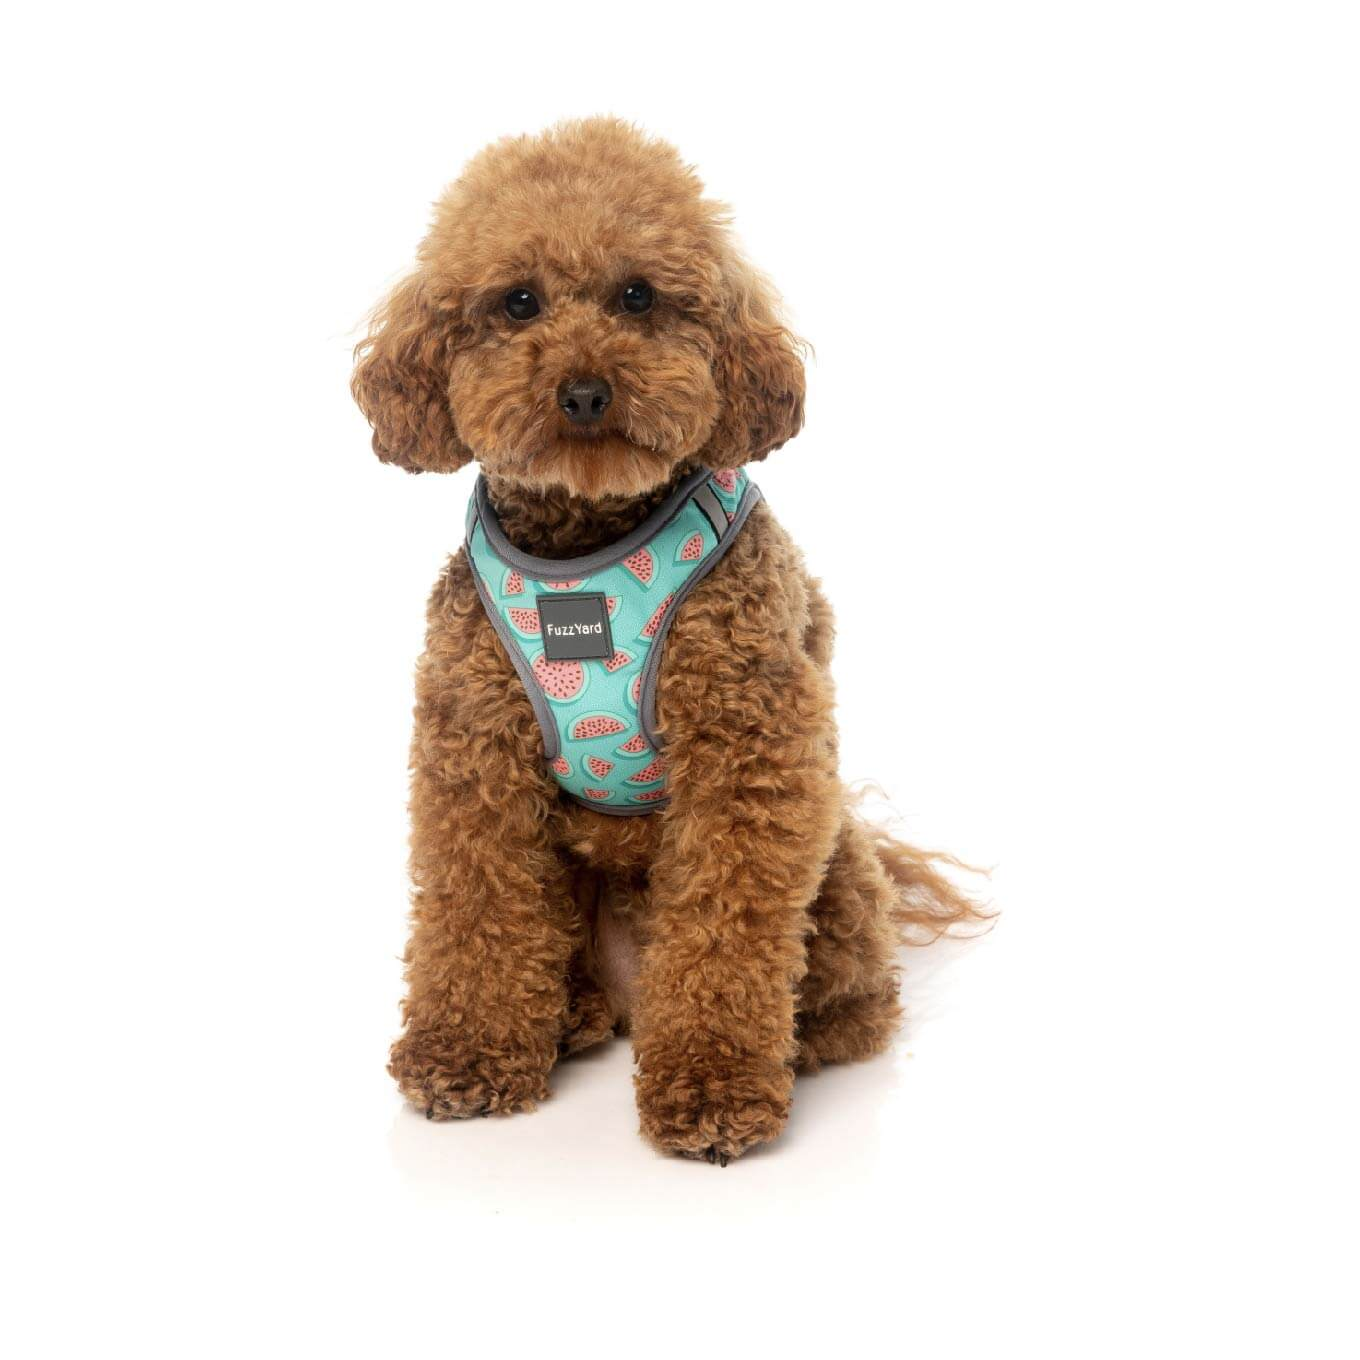 FuzzYard Summer Punch Step-in Harness - Dogs, FuzzYard, Harnesses, New - Shop Vanillapup - Online Pet Shop